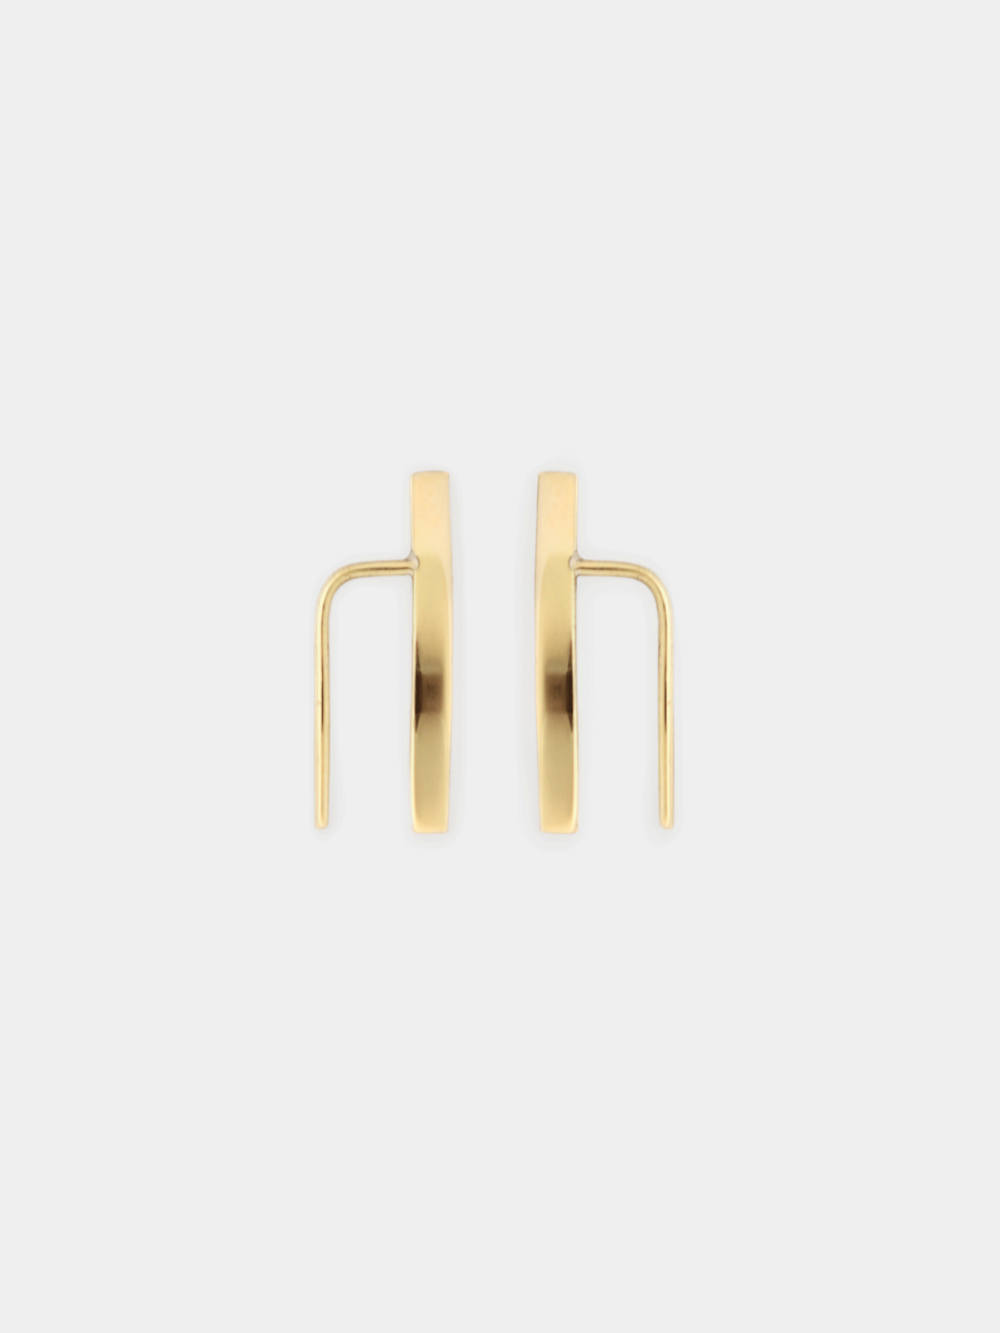 BEPART LINE EARCLIMBER Handmade in Bepart studio in Slovakia, the Line ear climber is geometric, clean and very polished take on classic earring.